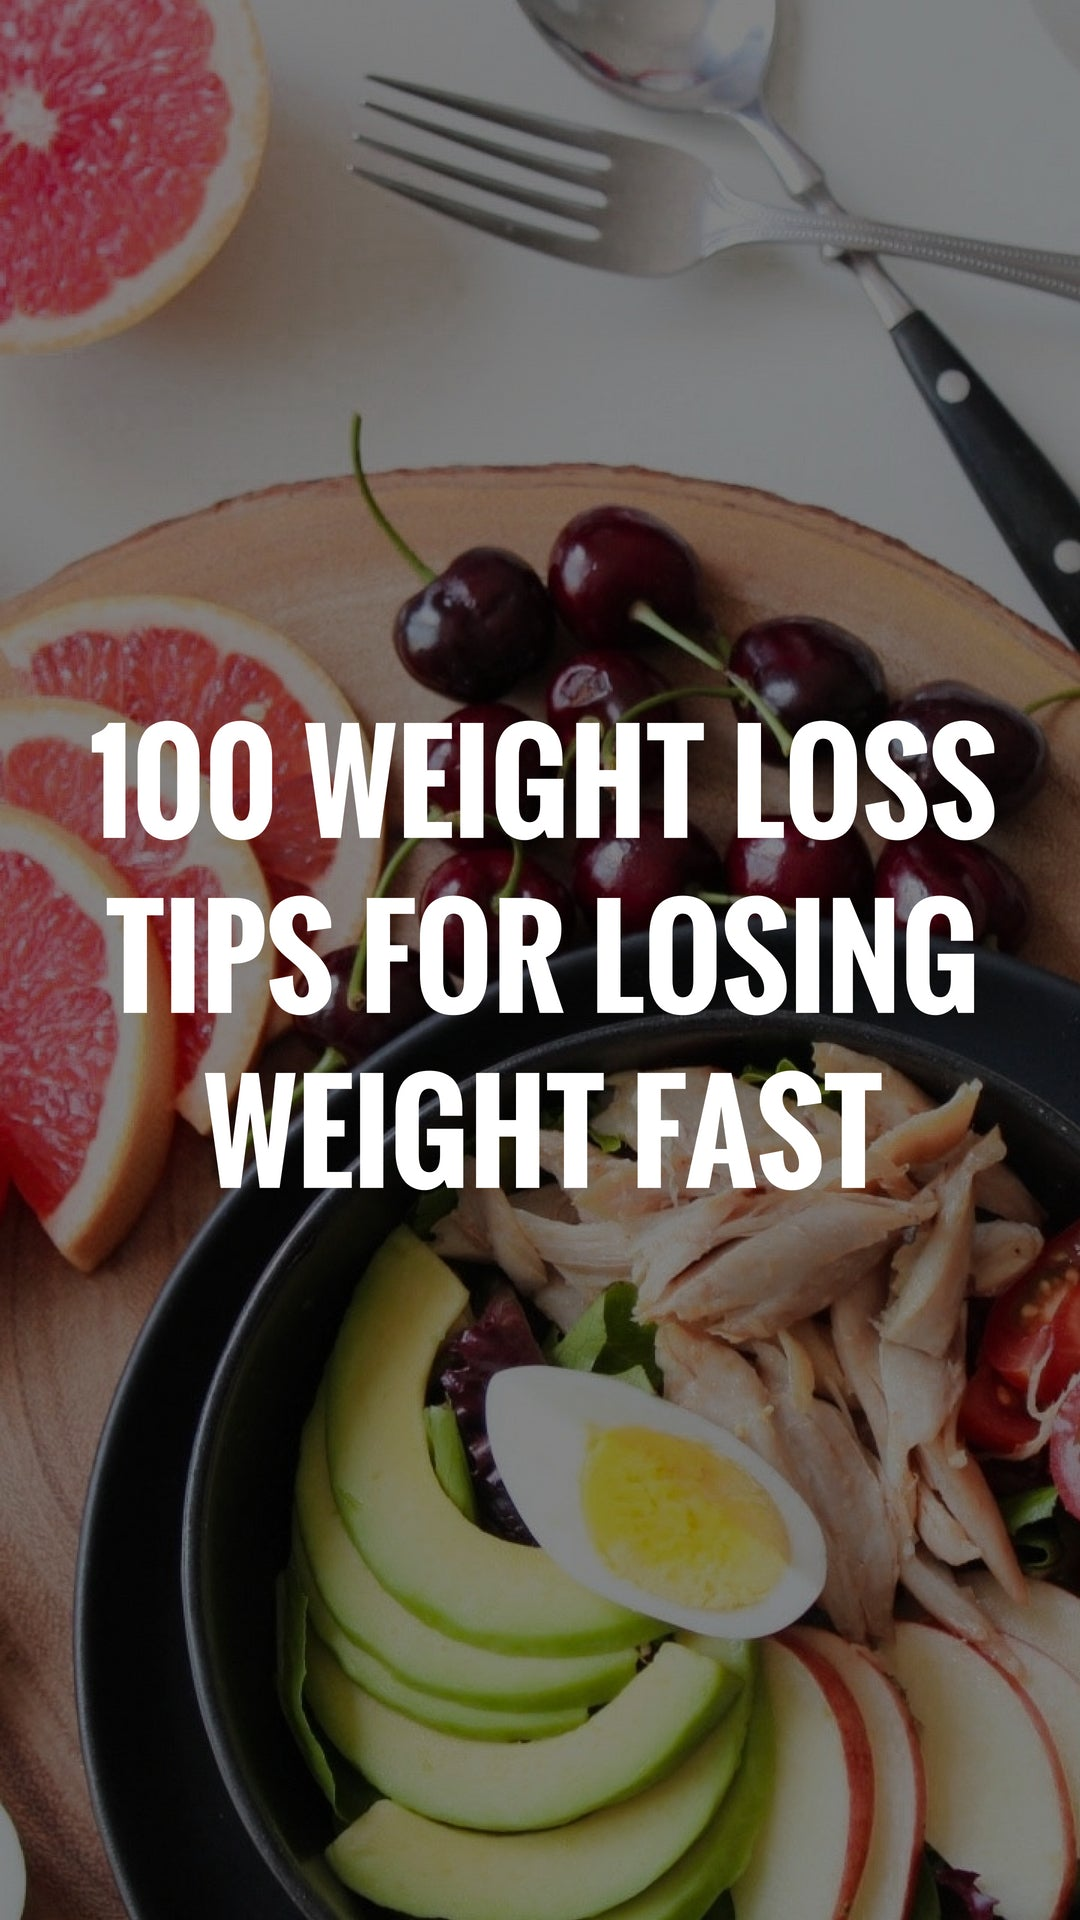 100 Weight Loss Tips For Losing Weight Fast